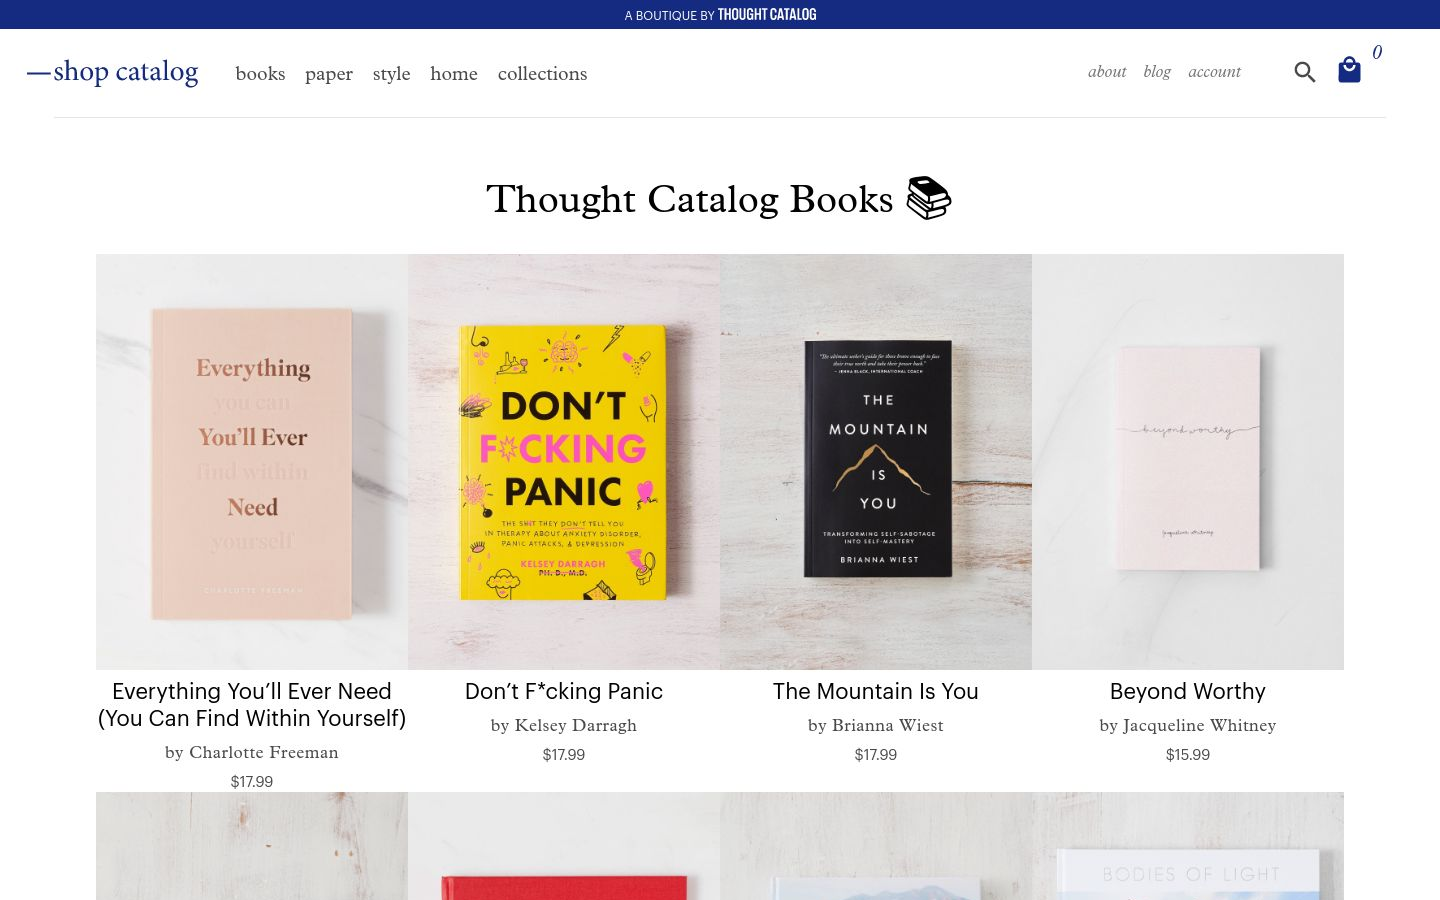 Thought Catalog Books